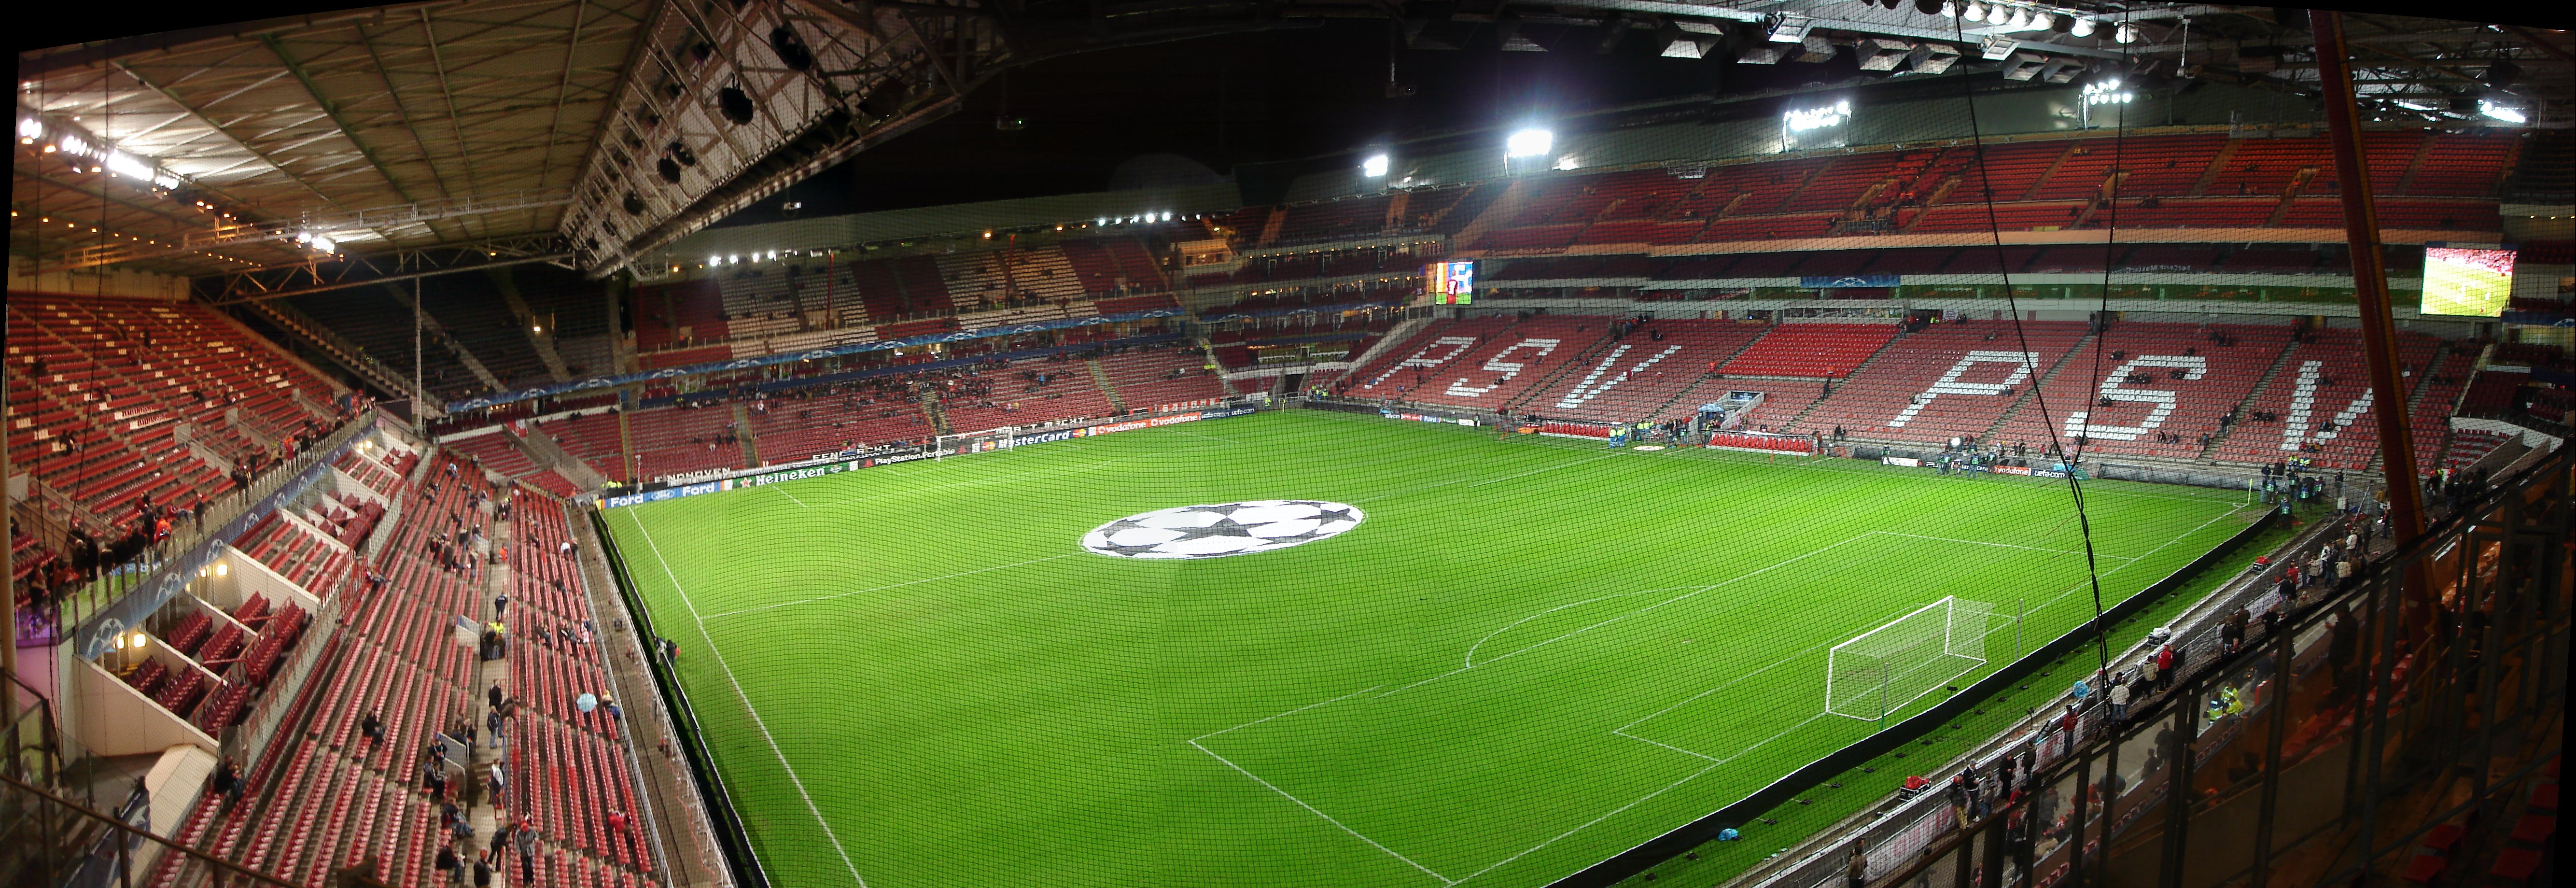 Philips Stadion Wallpaper